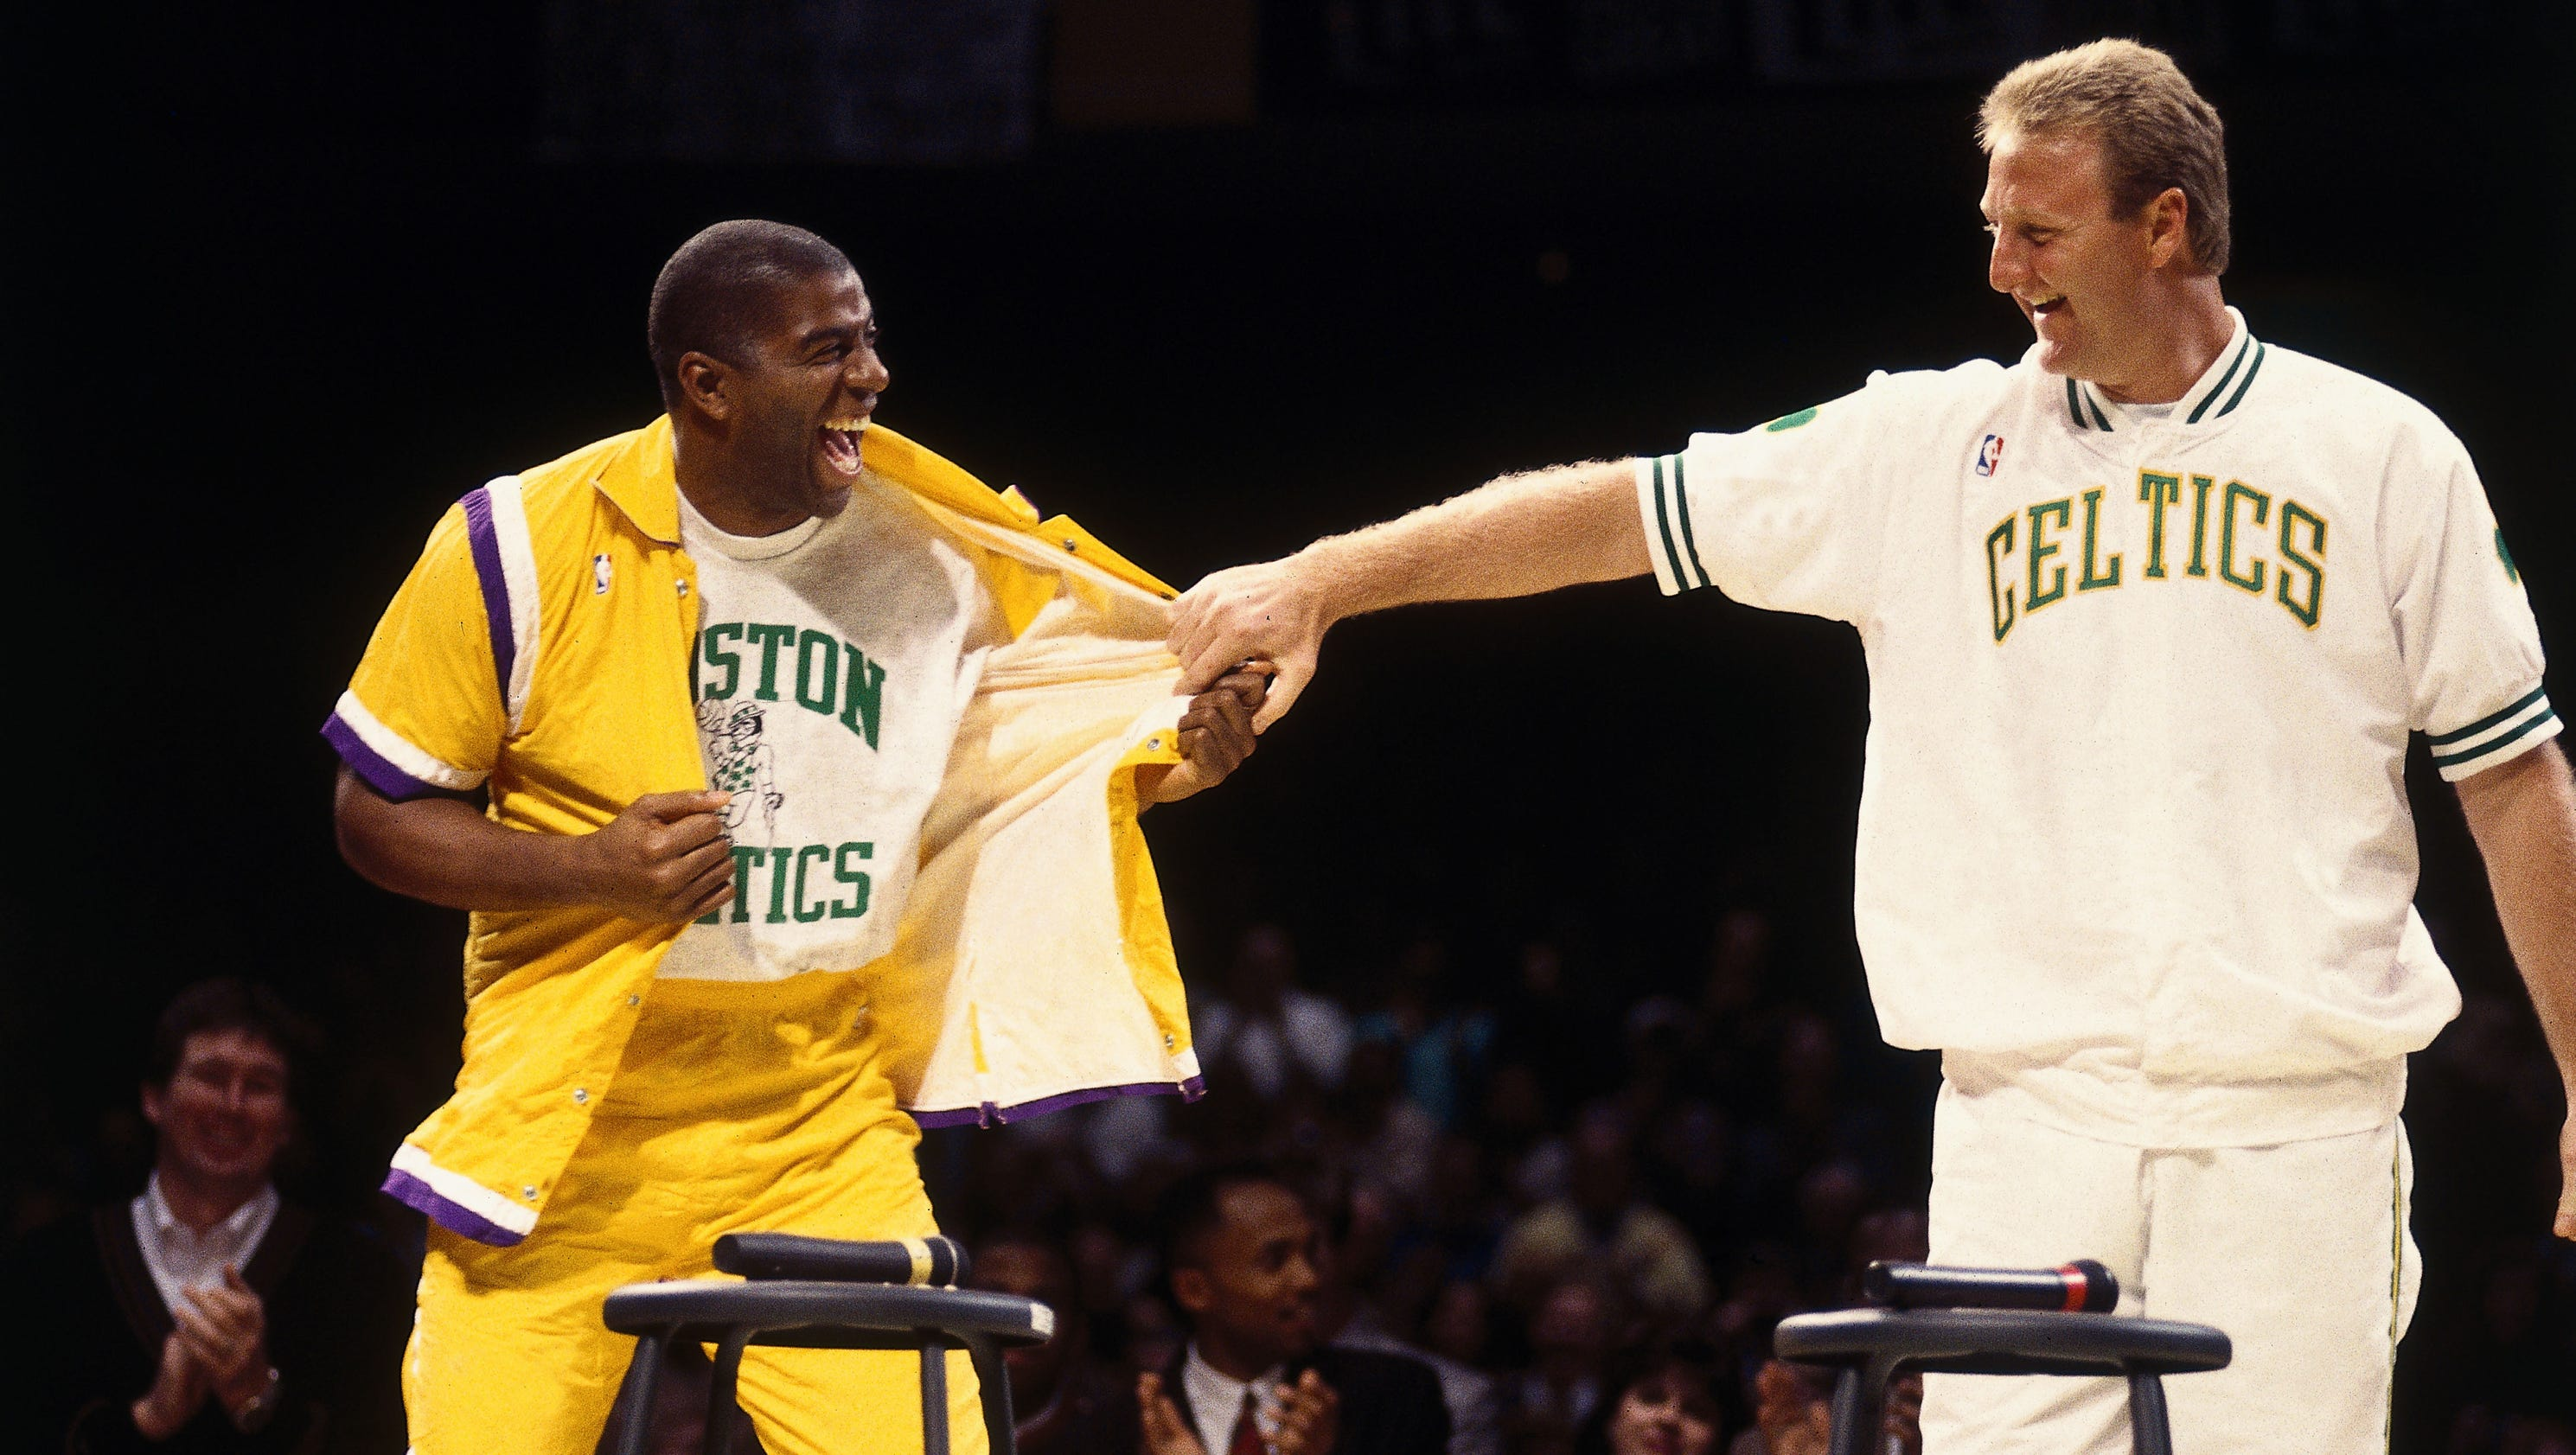 Celtics-Lakers: A look at the NBA's most storied rivalry